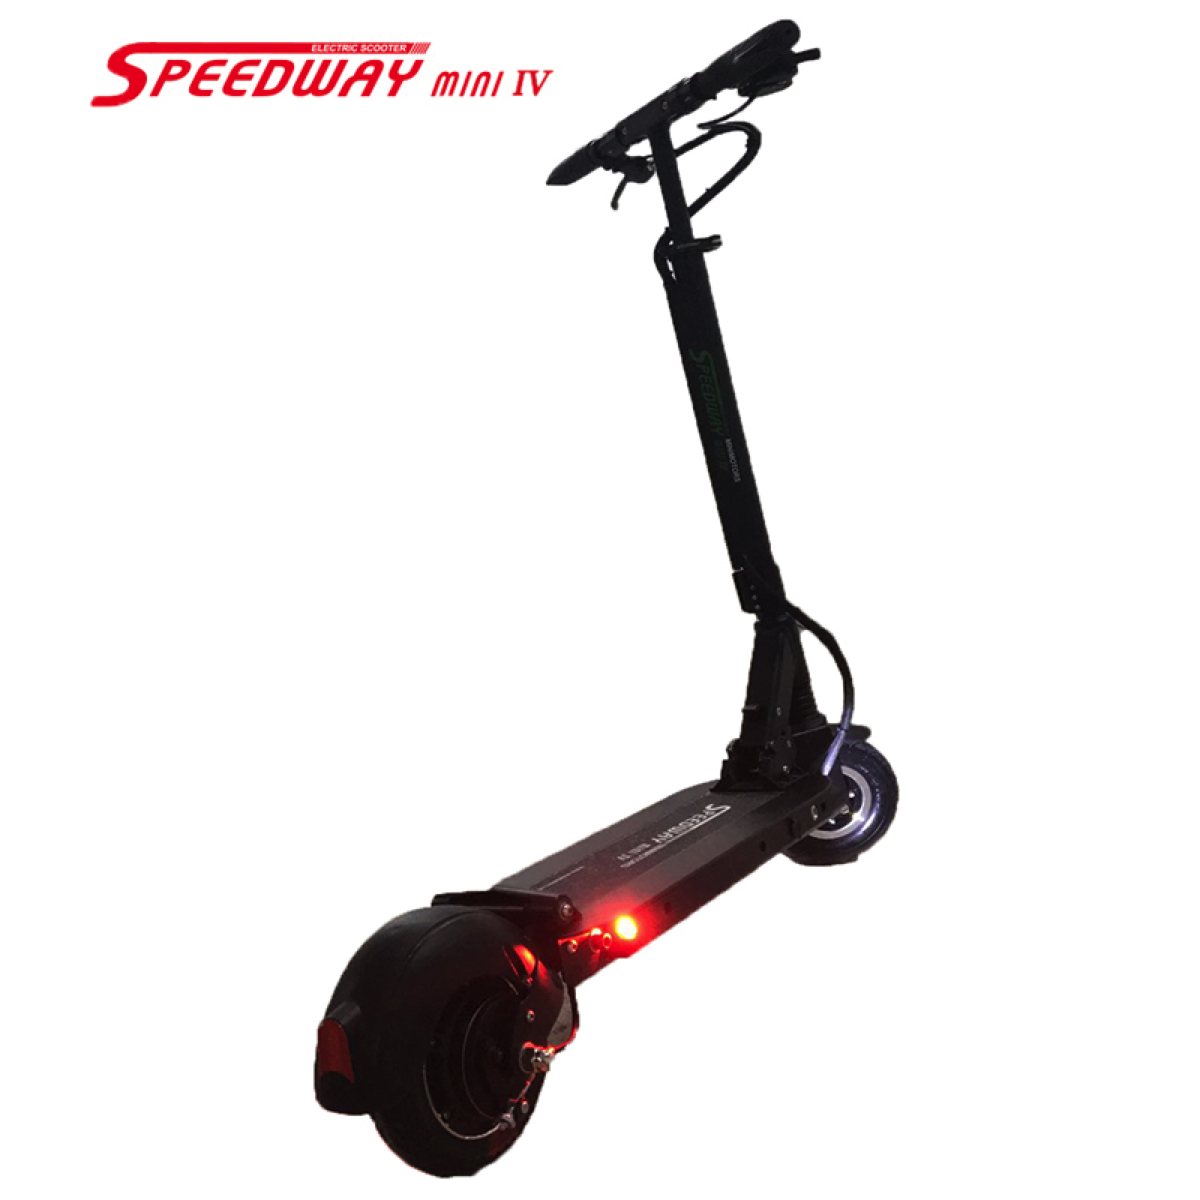 Speedway Mini IV Electric Scooter Bali Jakarta Indonesia